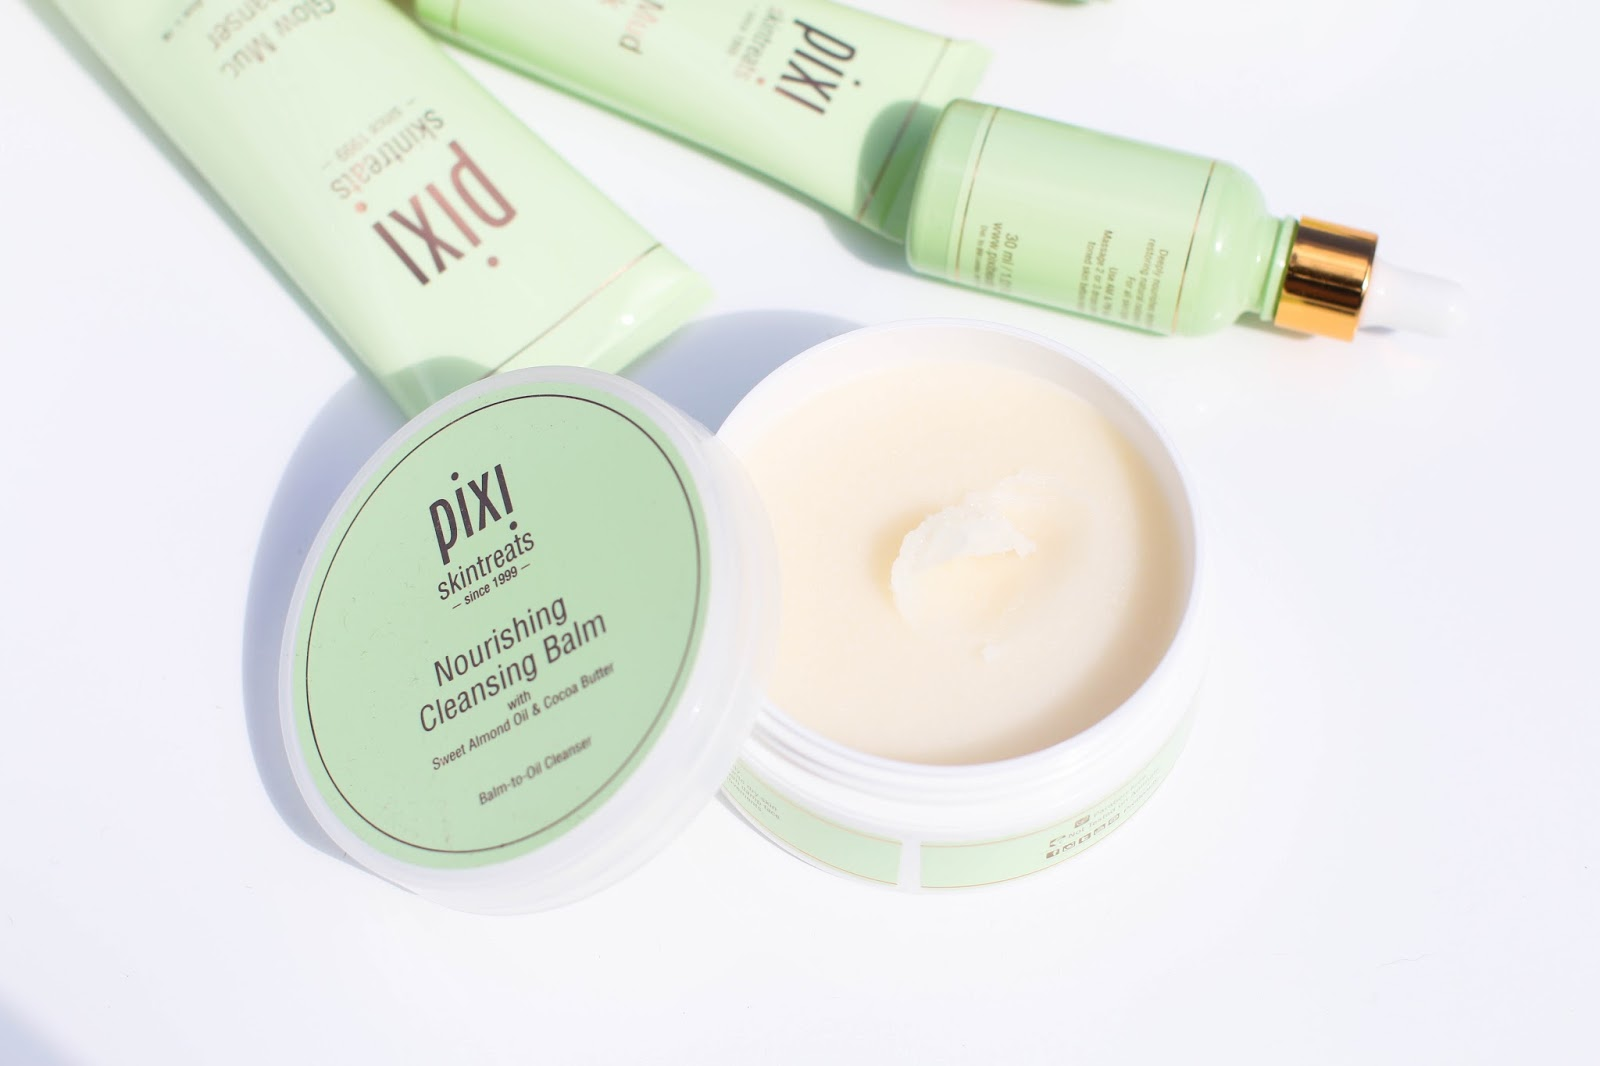 Pixi Nourishing Cleansing Balm review